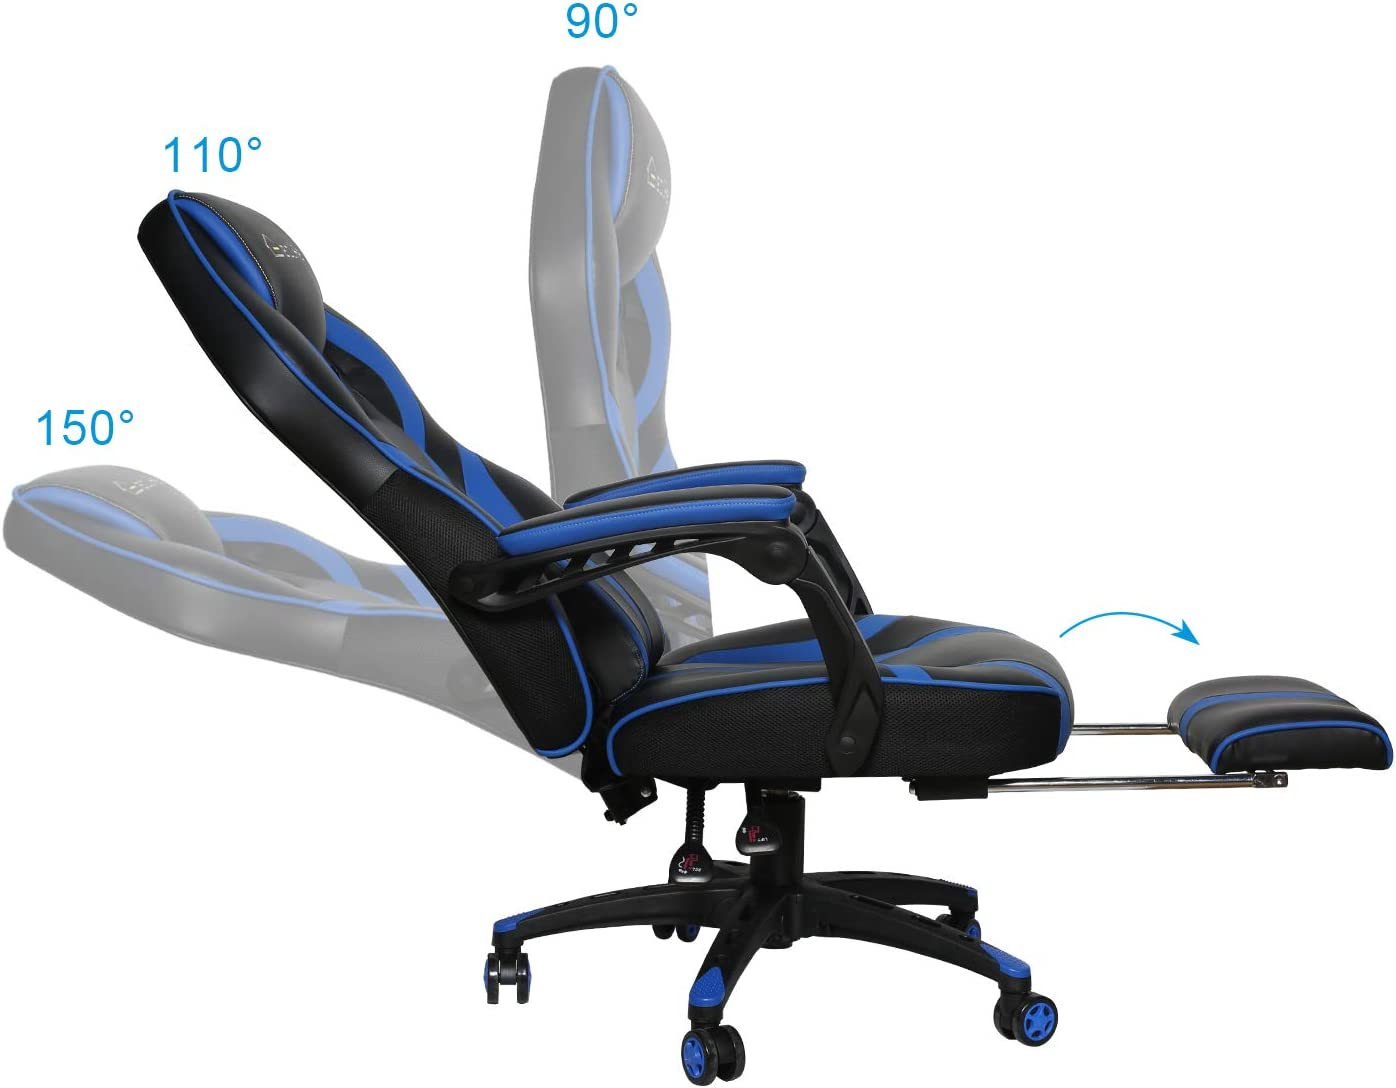 OF-D01, Black eclife Gaming Chair Office Computer Chair Game Video Chair High Back Ergonomic Backrest Seat Adjustable Swivel Task Chair E-Sports Chair with Lumbar Support and Footrest